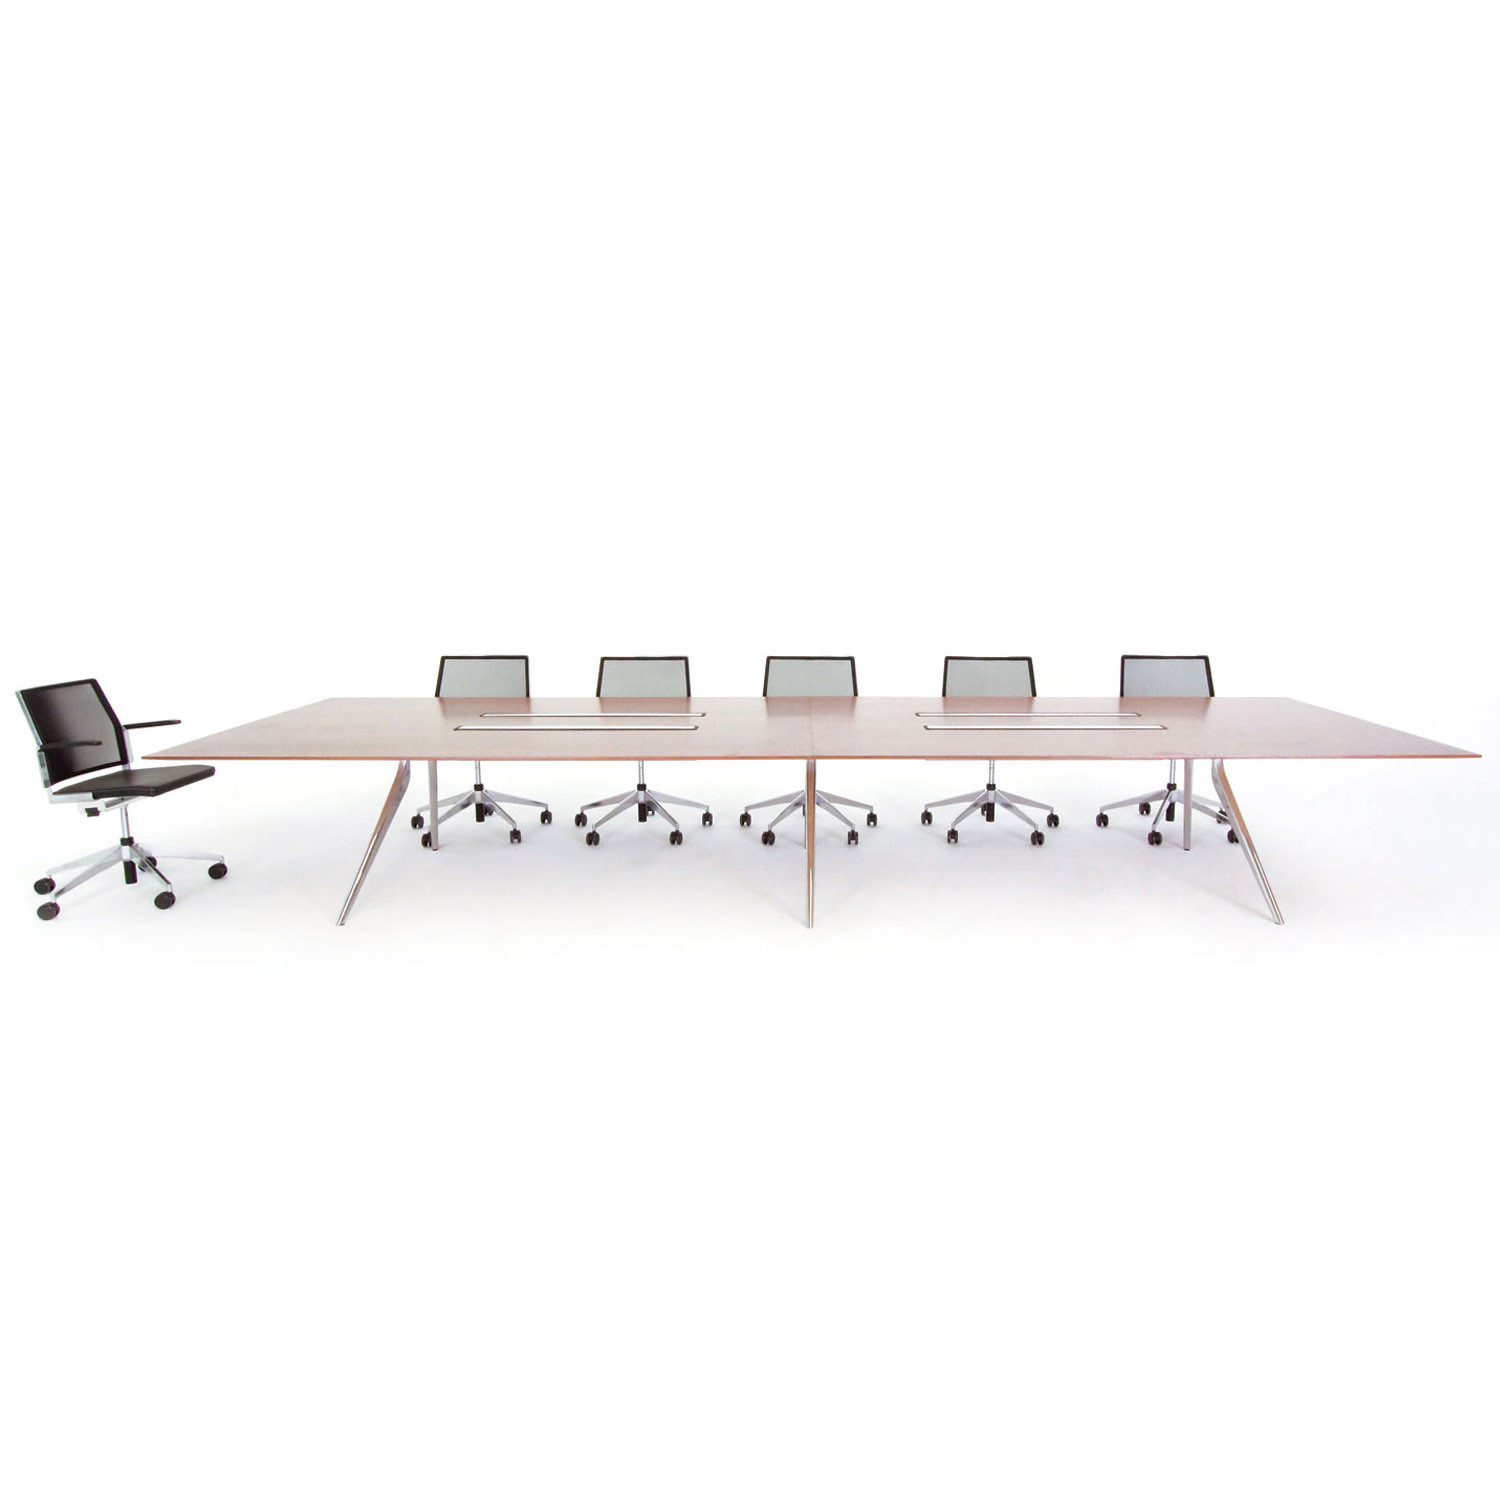 Eona Conference Tables